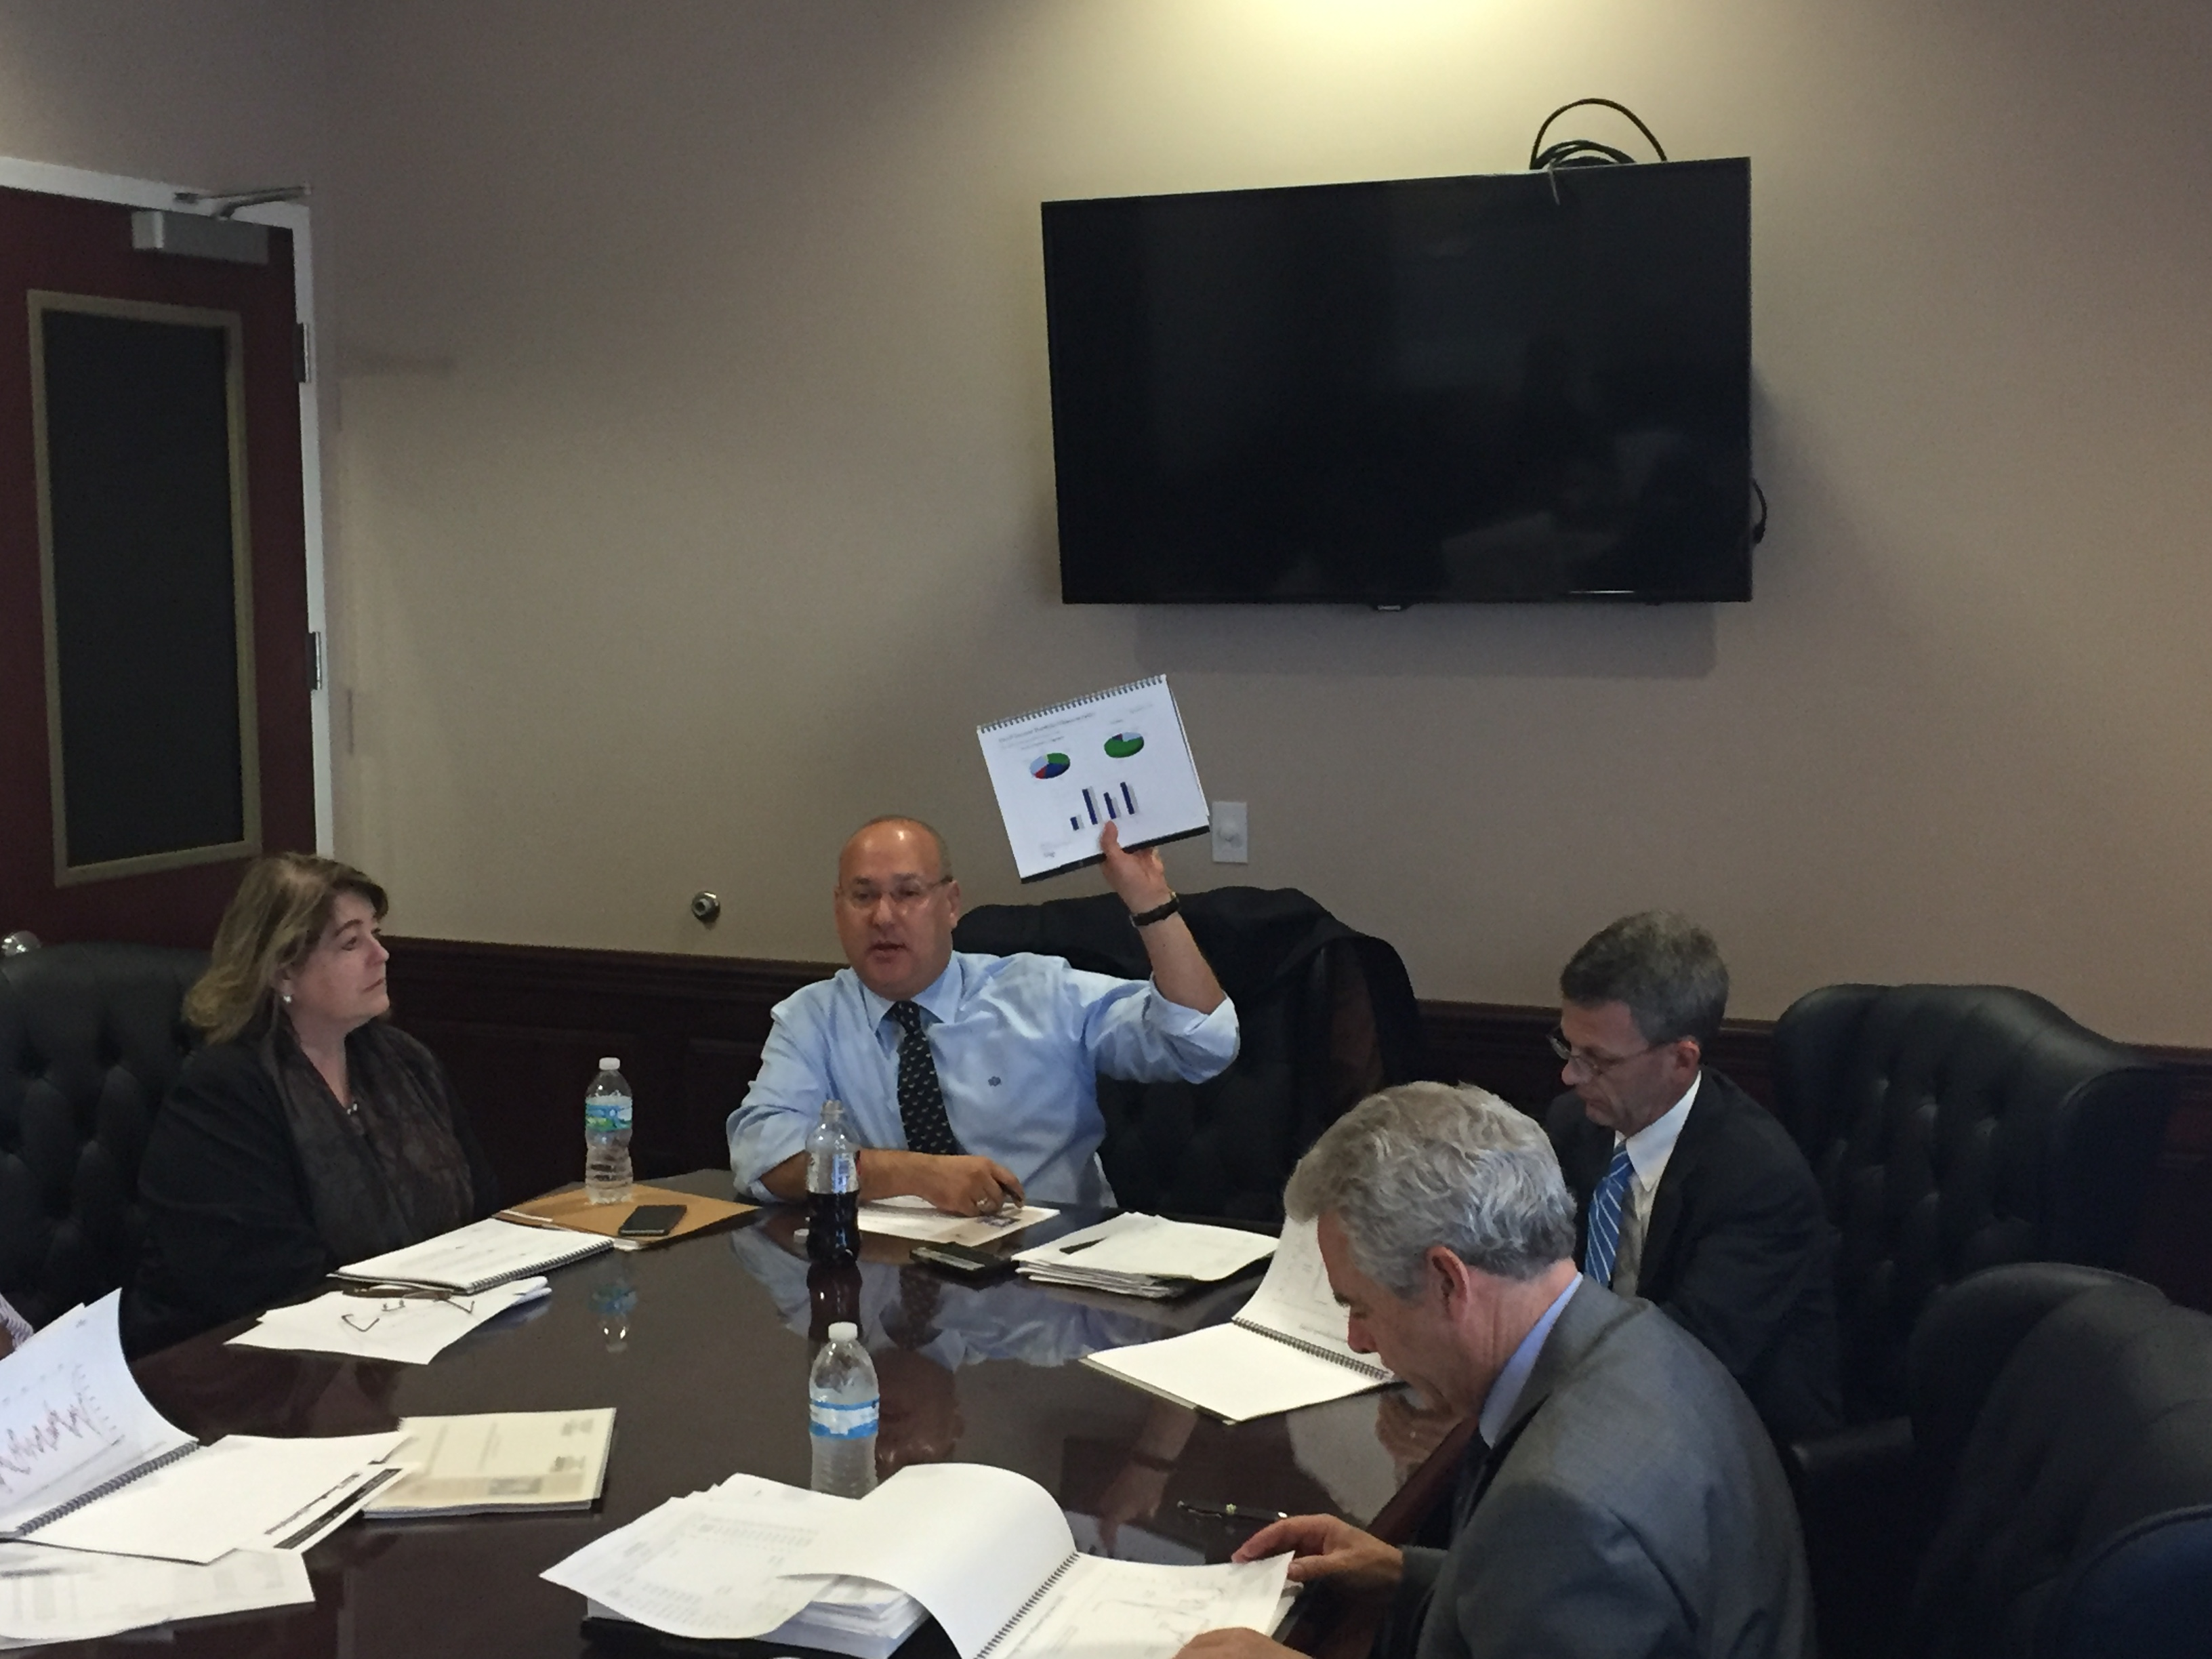 Janna Hamilton, Gilbert Garcia and Curt Rohrman from Garcia Hamilton & Associates (GHA) appeared before the Board of Trustees to discuss the September 30, 2015 Quarter and present their annual review of their portfolio. The Board would like to congra